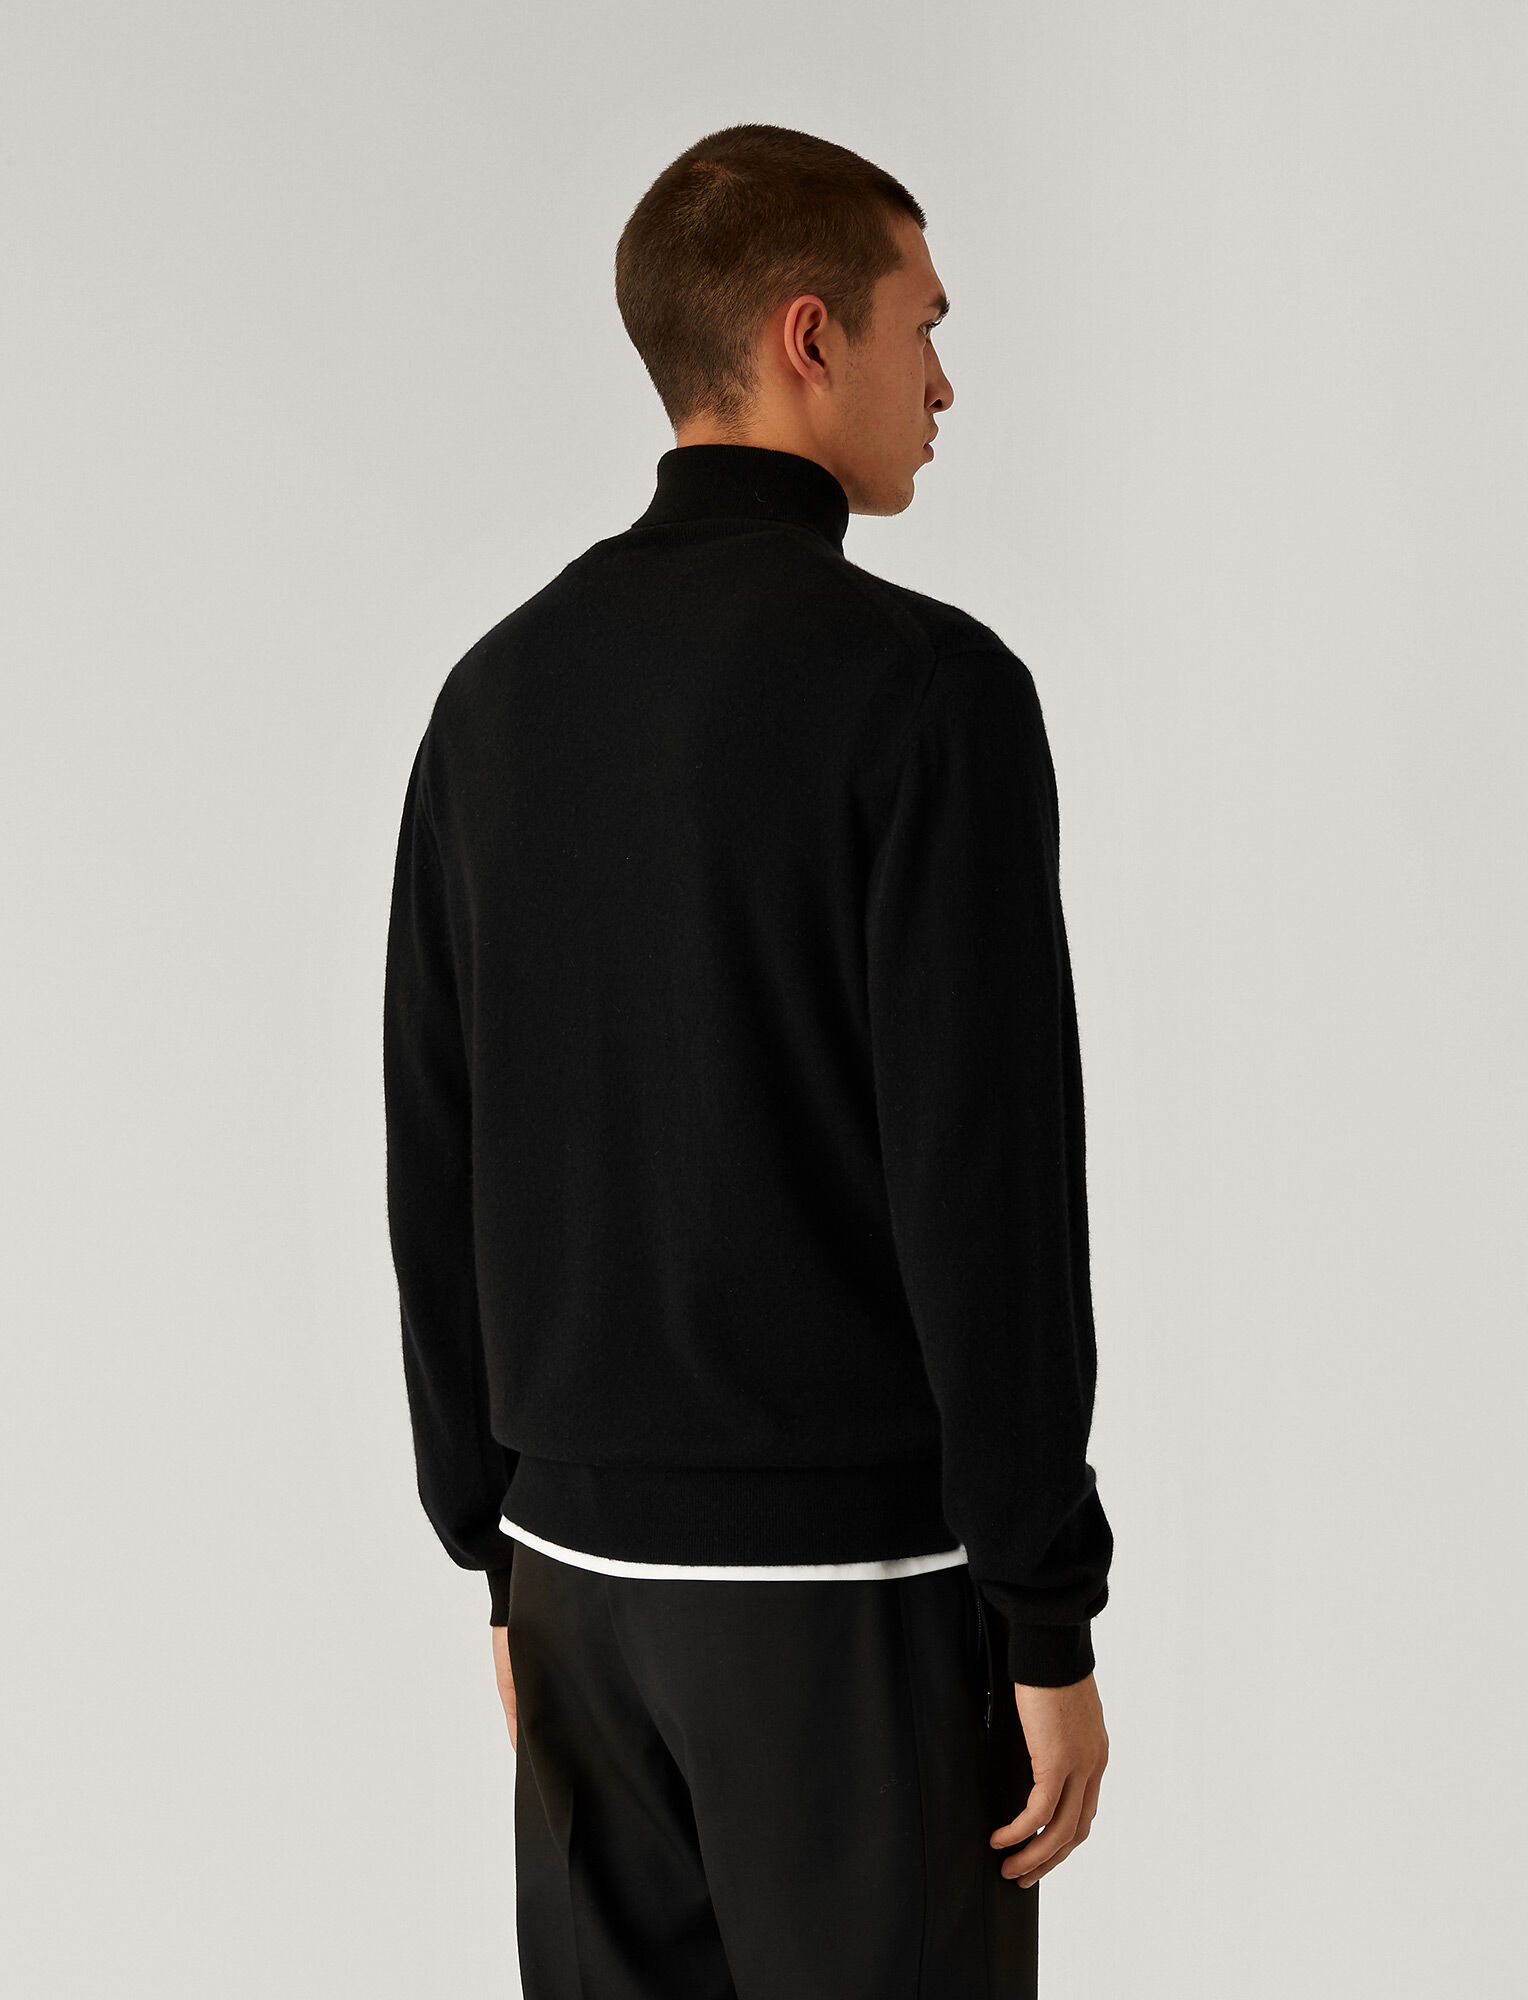 Joseph, Roll Neck Cashmere Knit, in Black